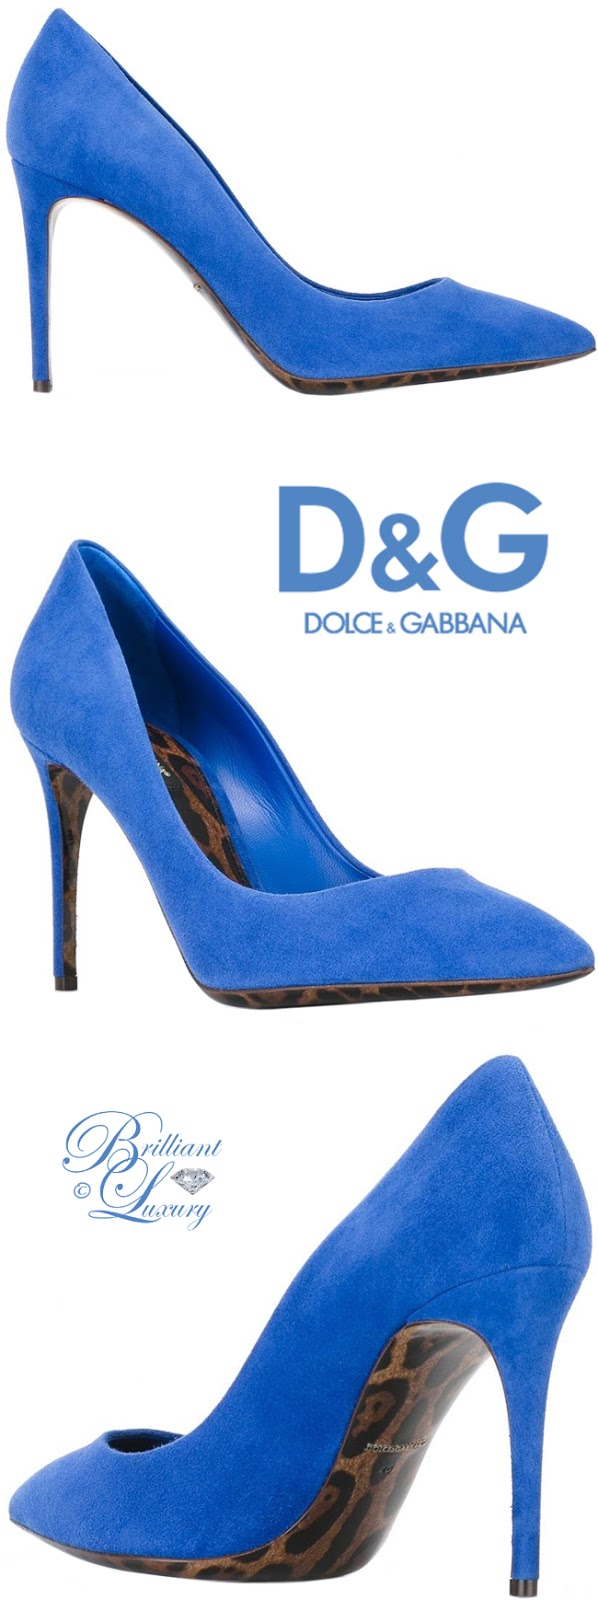 Brilliant Luxury ♦ Dolce & Gabbana Belucci pumps